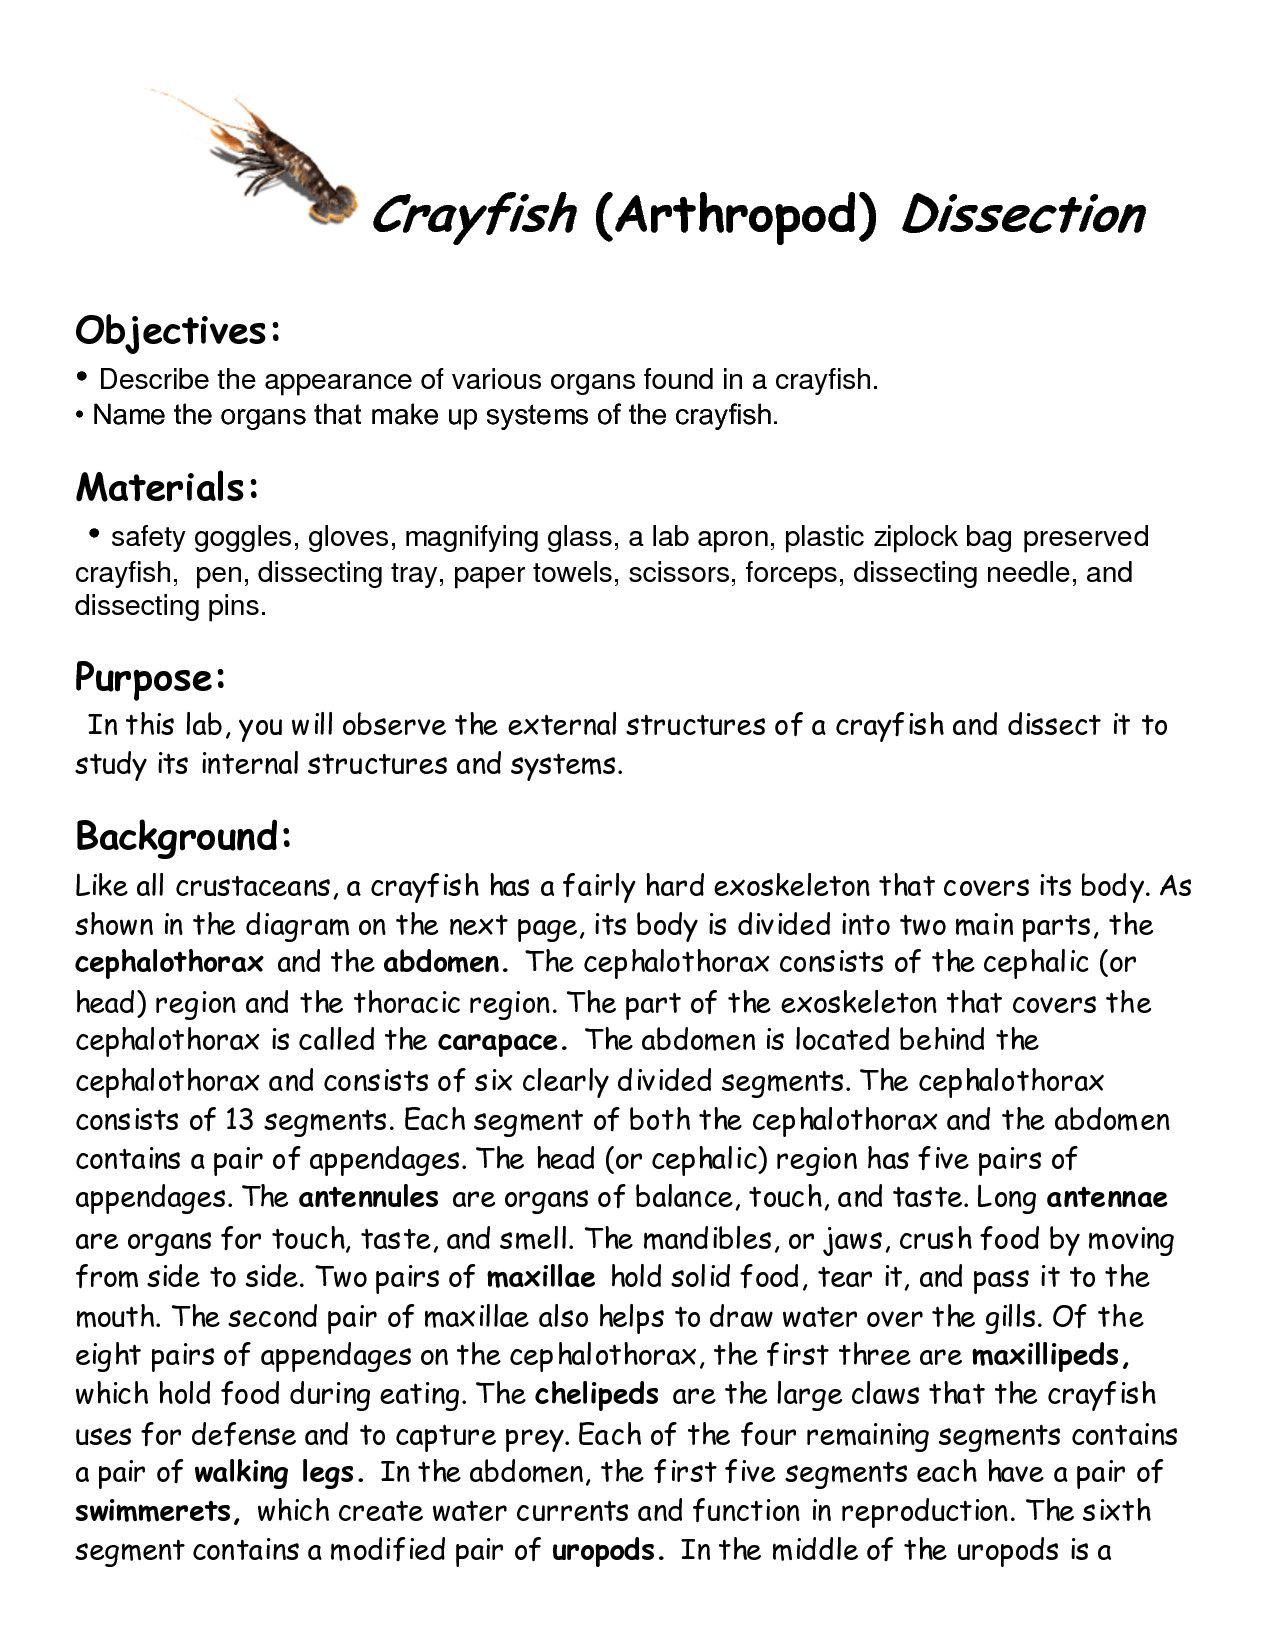 Qualifiedformal Crayfish Dissection Worksheet Answers